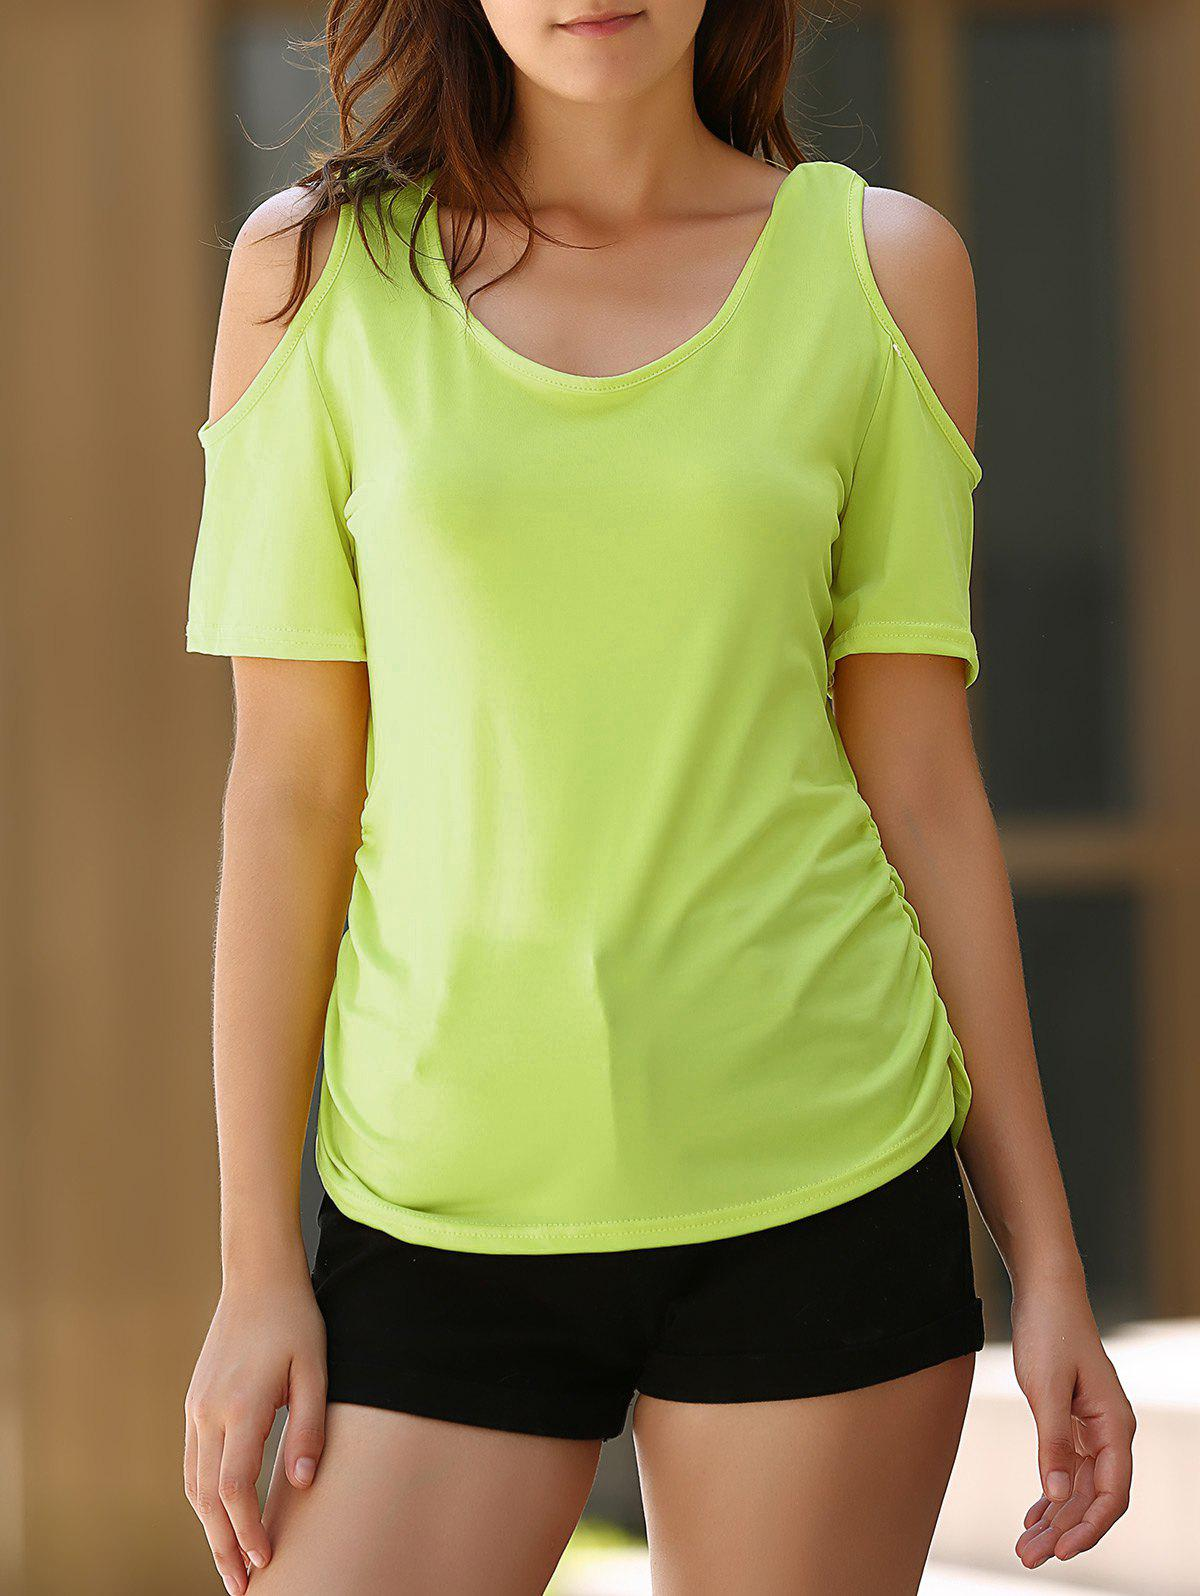 Sexy Women's U Neck Cold Shoulder Solid Color T-Shirt - M NEON GREEN